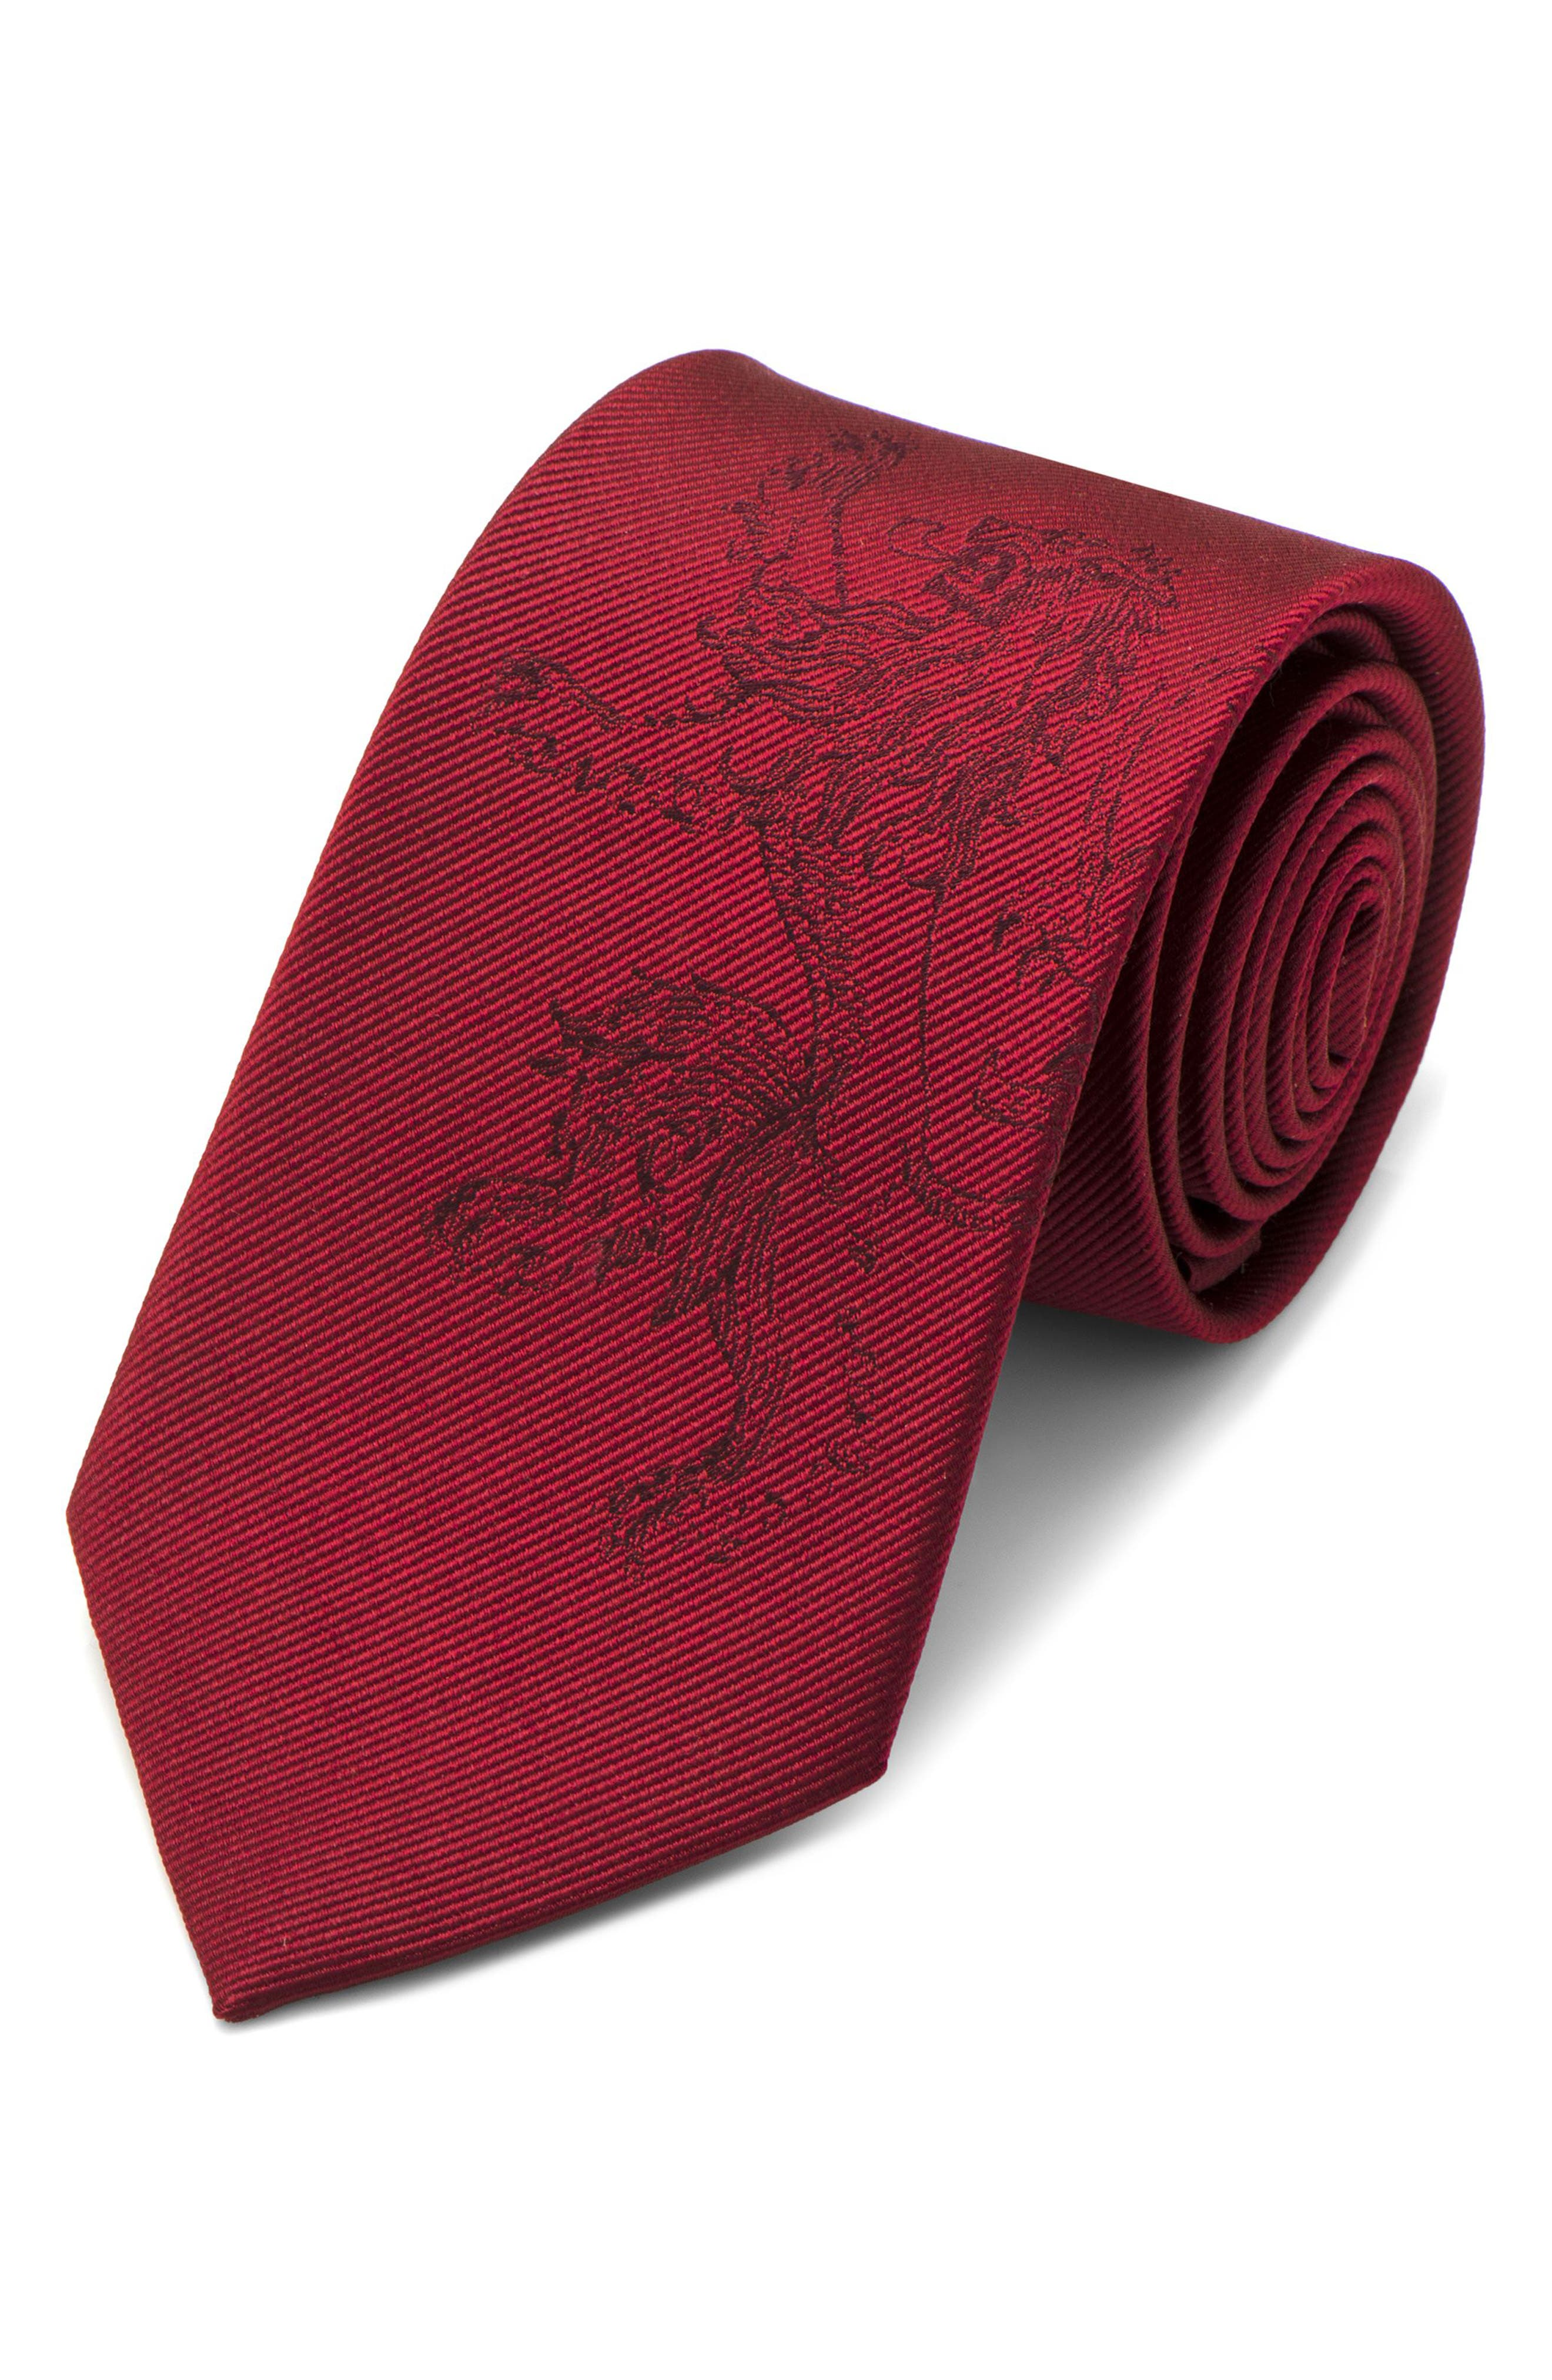 Game of Thrones Lannister Silk Tie,                         Main,                         color, Red